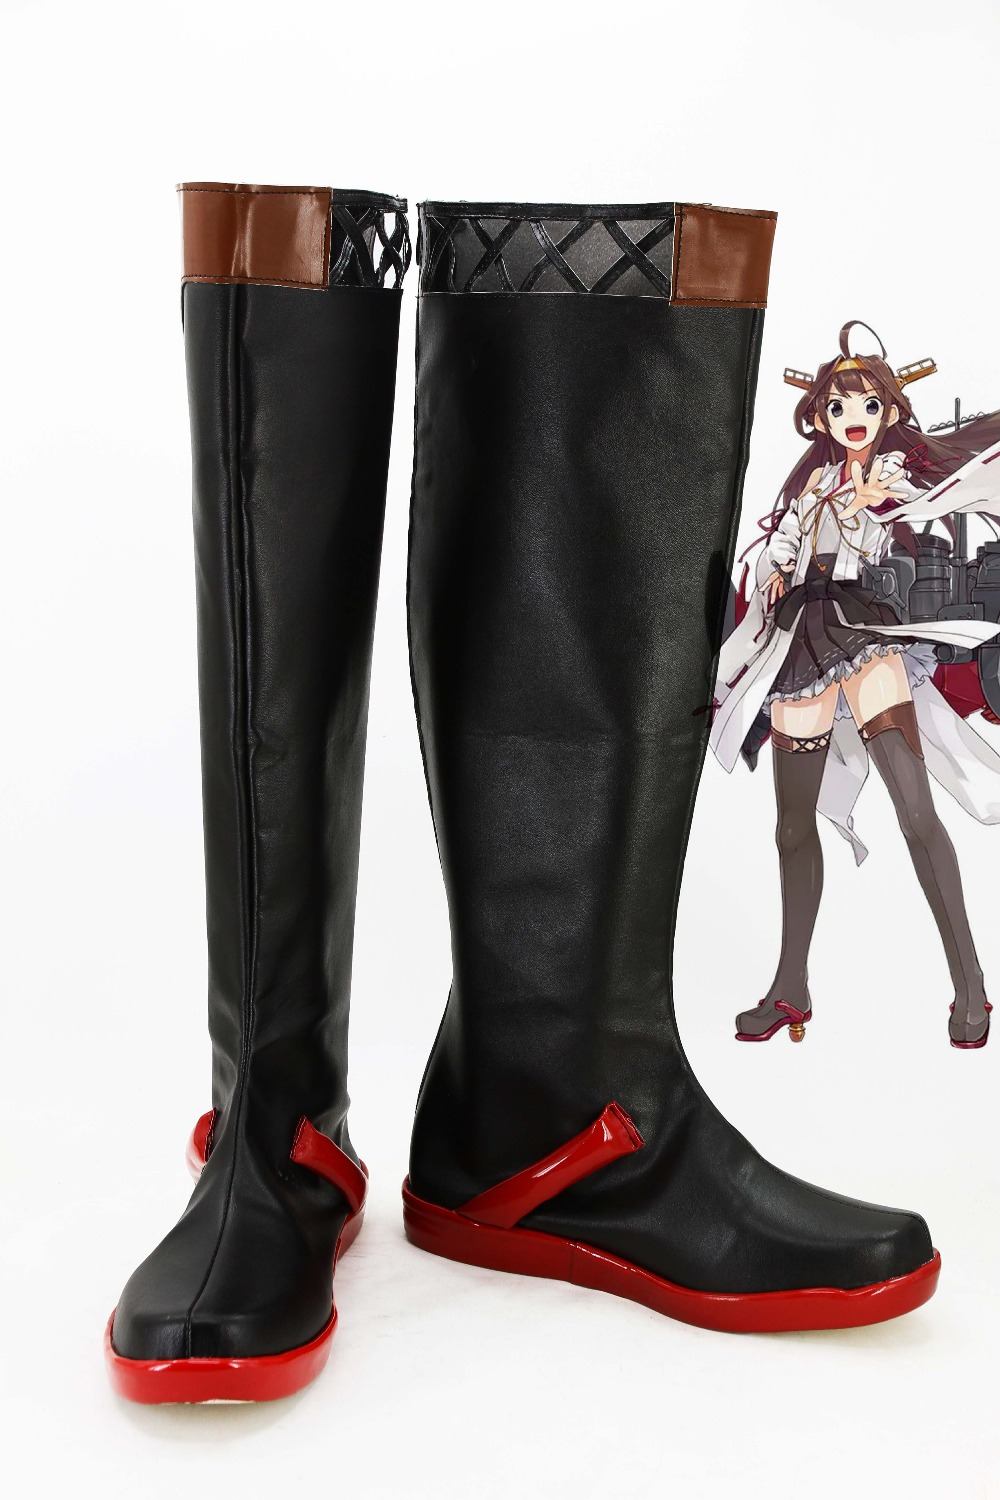 Black Kongou Cosplay Shoes Anime Kantai Collection KanColle Long Boots For Halloween Christmas Festival For Women Girls